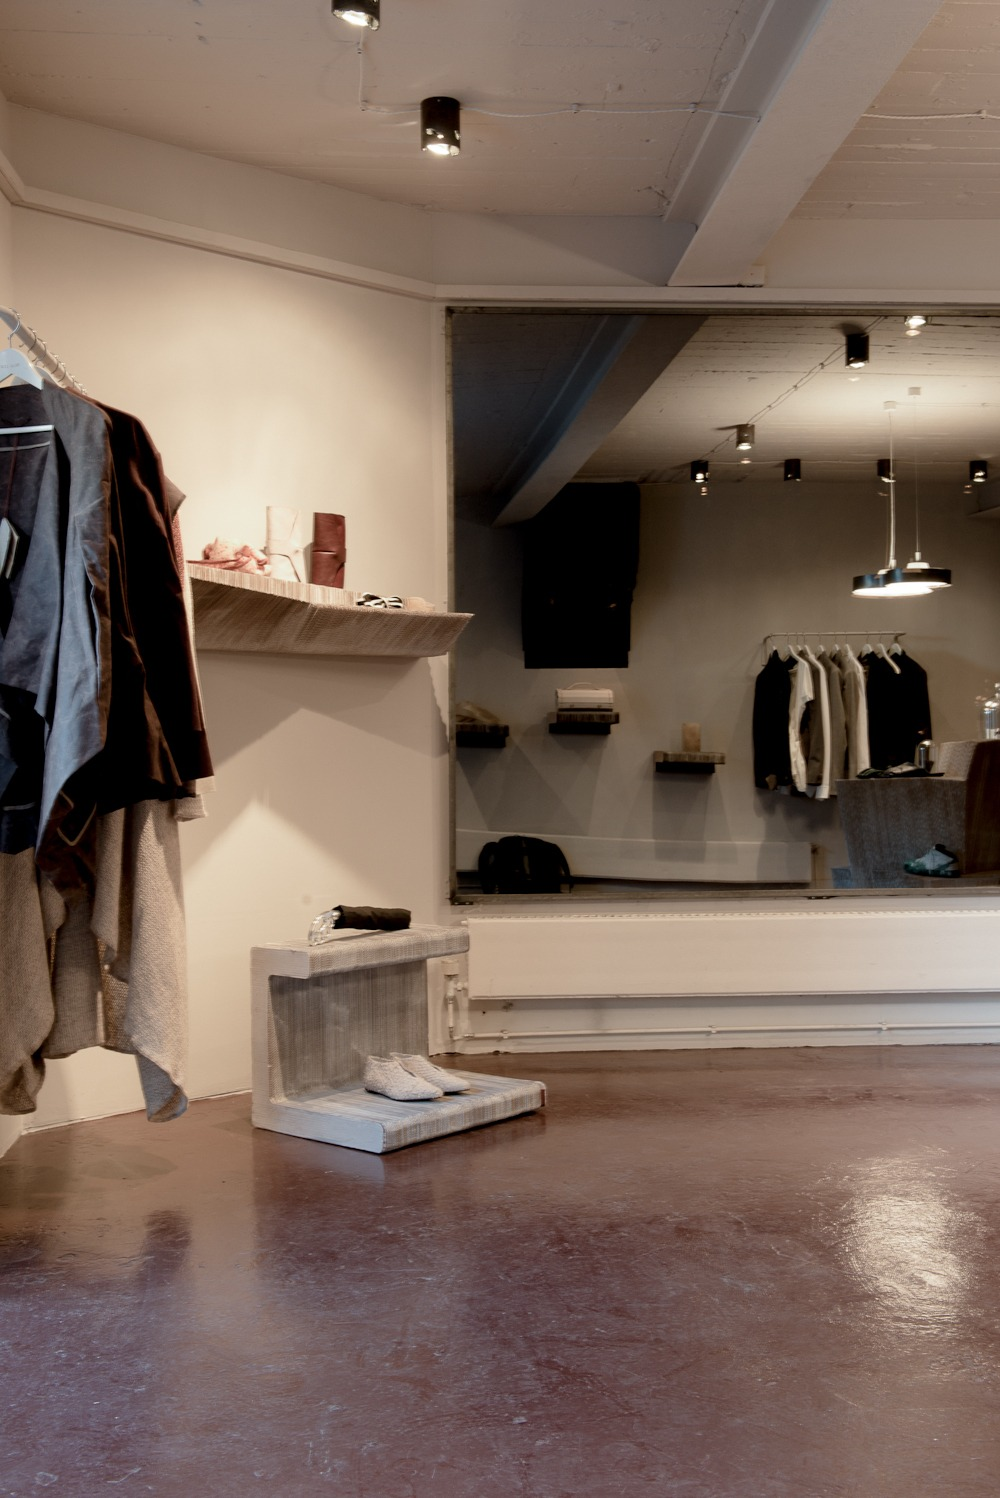 StyleZeitgeist The New Sruli Recht Boutique in Iceland Retail  review_s   StyleZeitgeist The New Sruli Recht Boutique in Iceland Retail  review_s   StyleZeitgeist The New Sruli Recht Boutique in Iceland Retail  review_s   StyleZeitgeist The New Sruli Recht Boutique in Iceland Retail  review_s